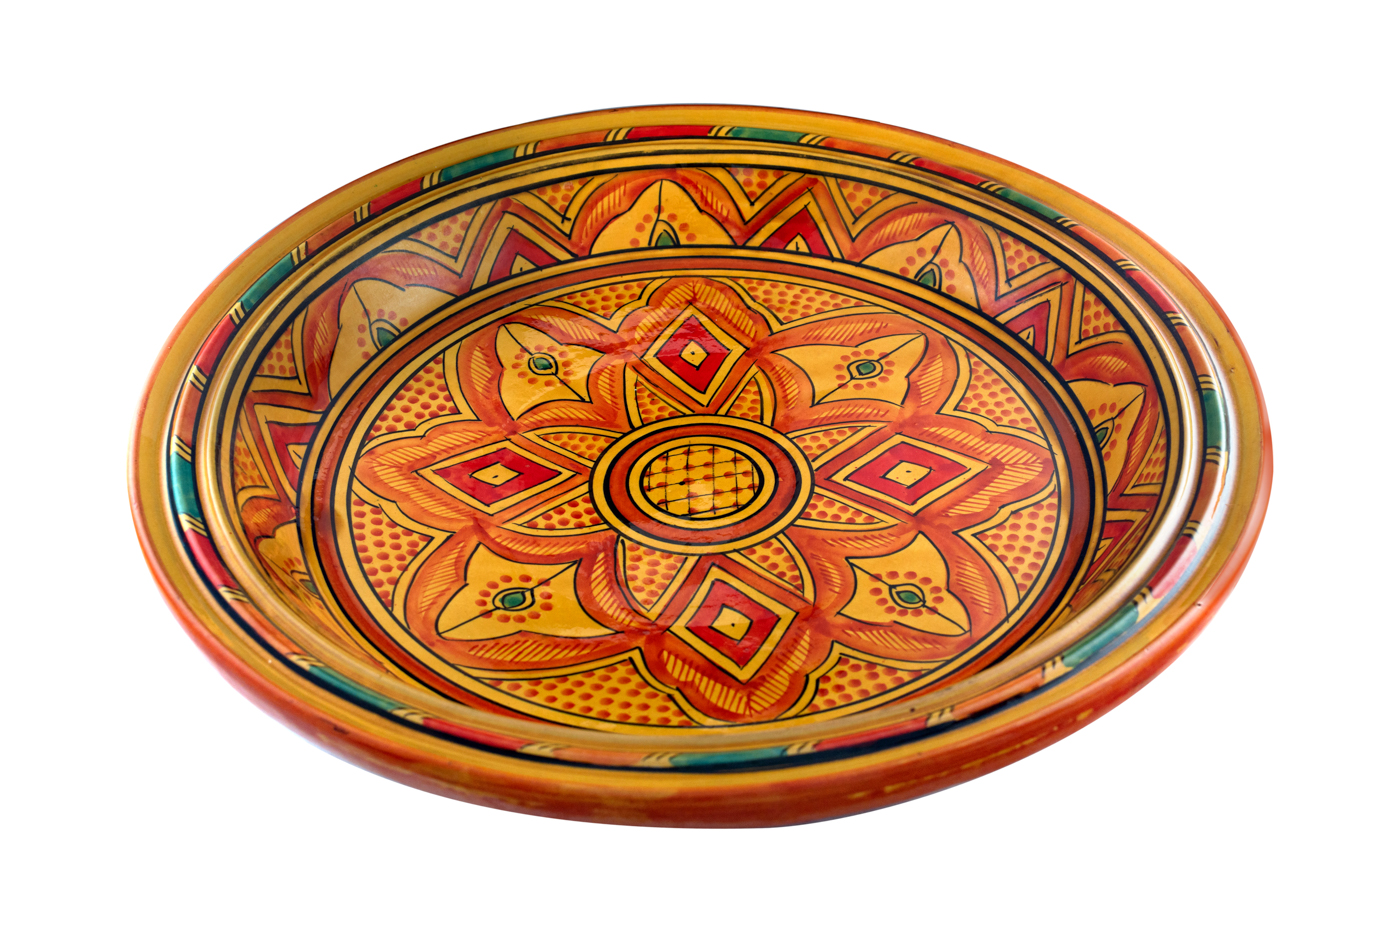 Moroccan Tray in painted ceramic with floral arabesque designs - Orange